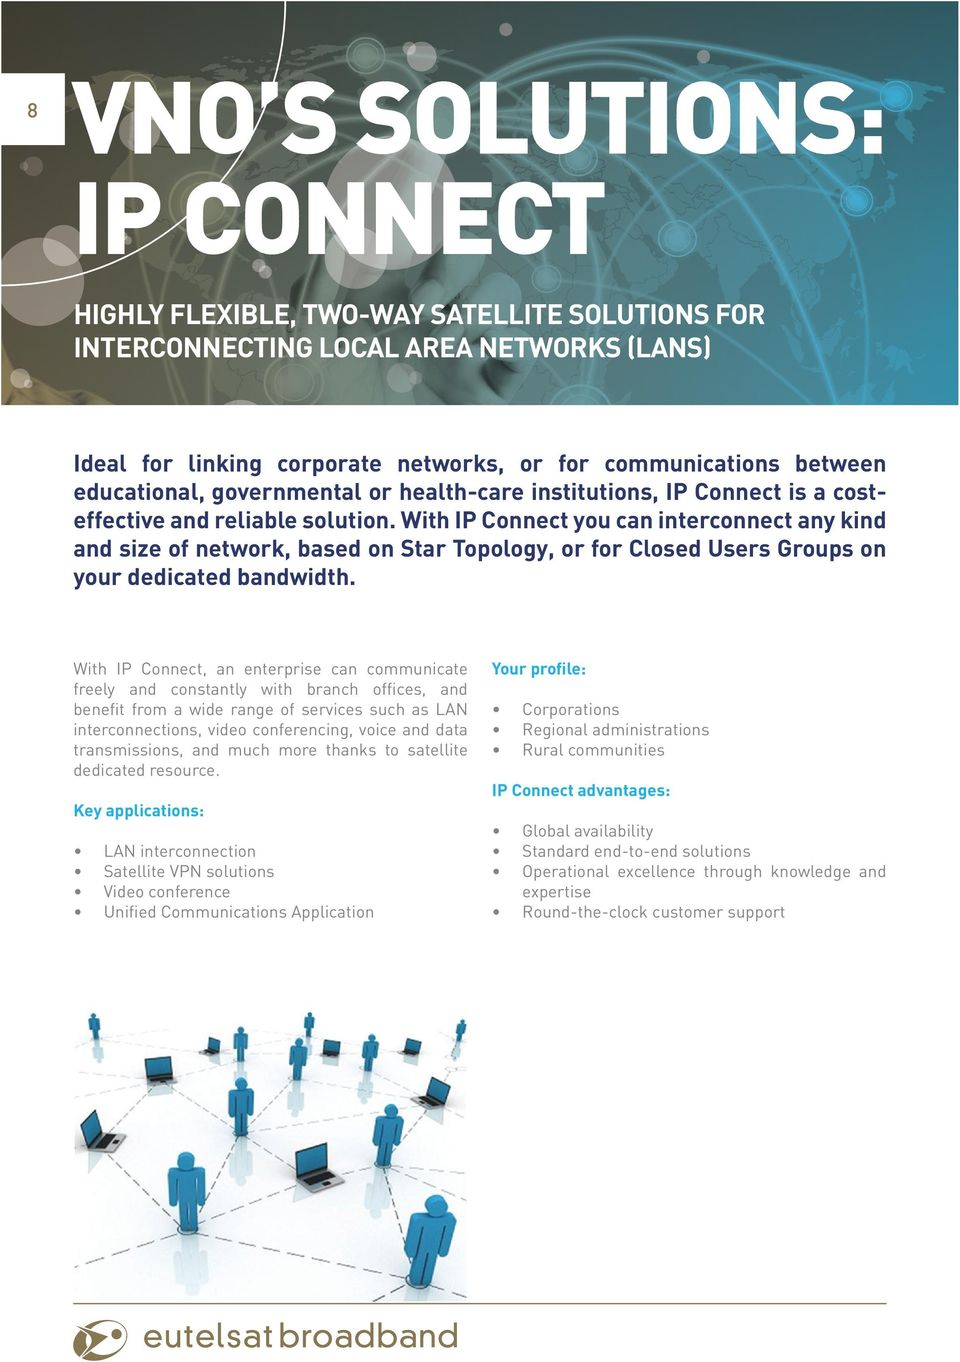 With IP Connect you can interconnect any kind and size of network, based on Star Topology, or for Closed Users Groups on your dedicated bandwidth.